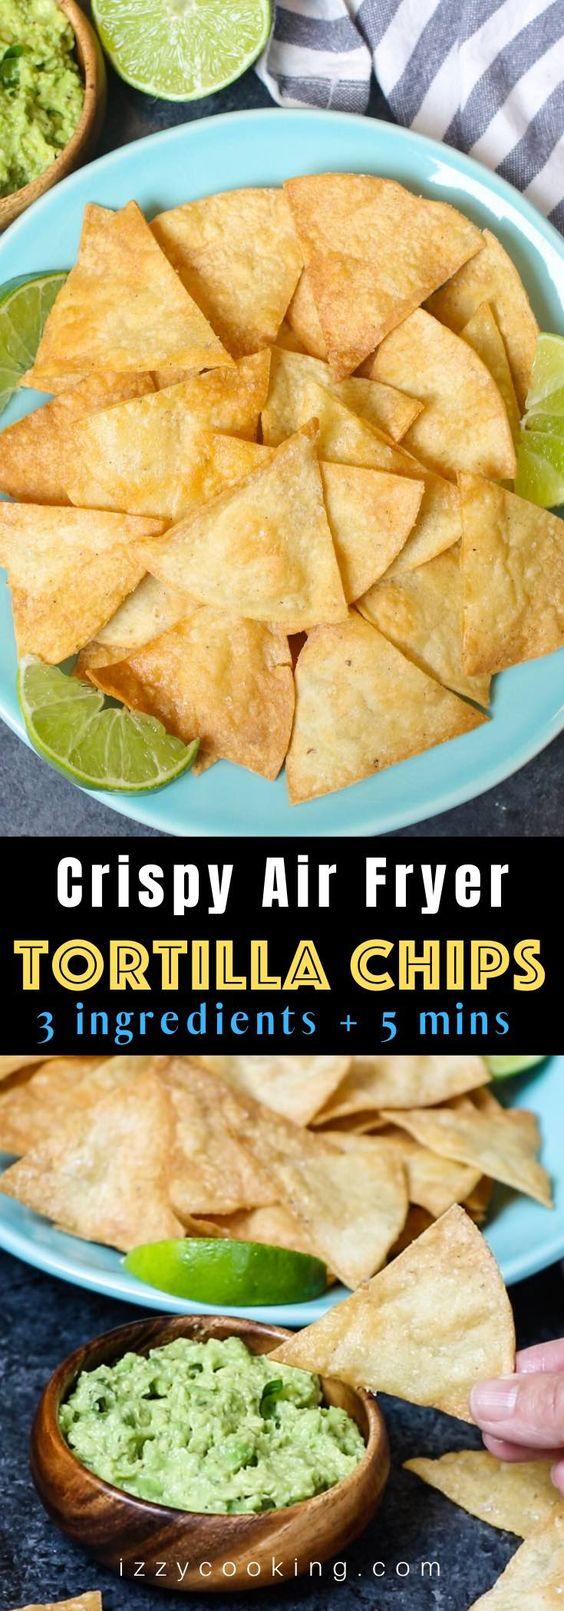 Crispy Air Fryer Tortilla Chips